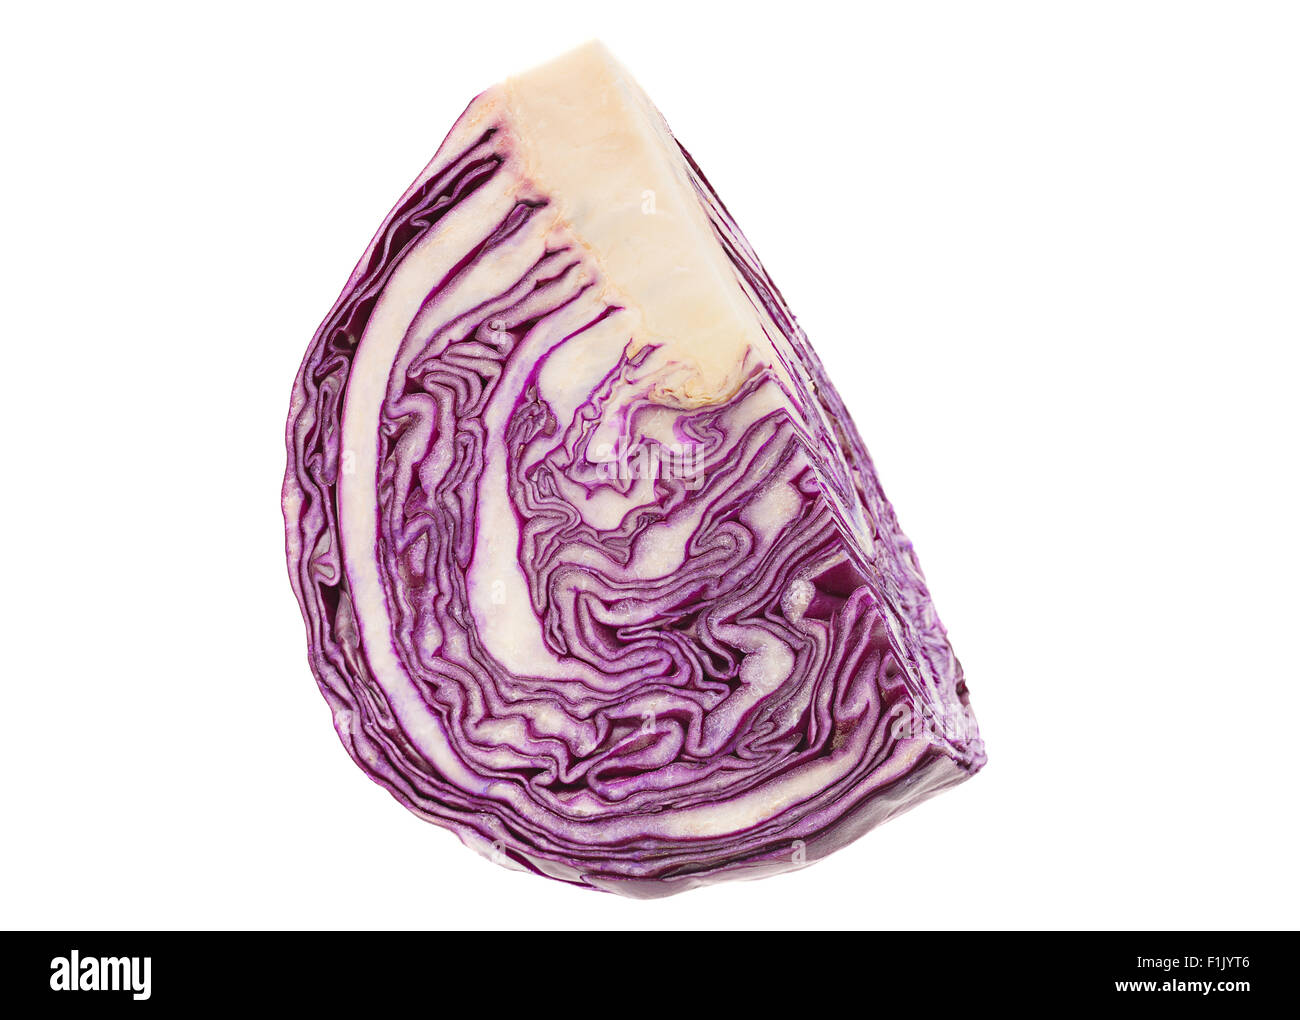 Purple cabbage part isolated on white background - Stock Image